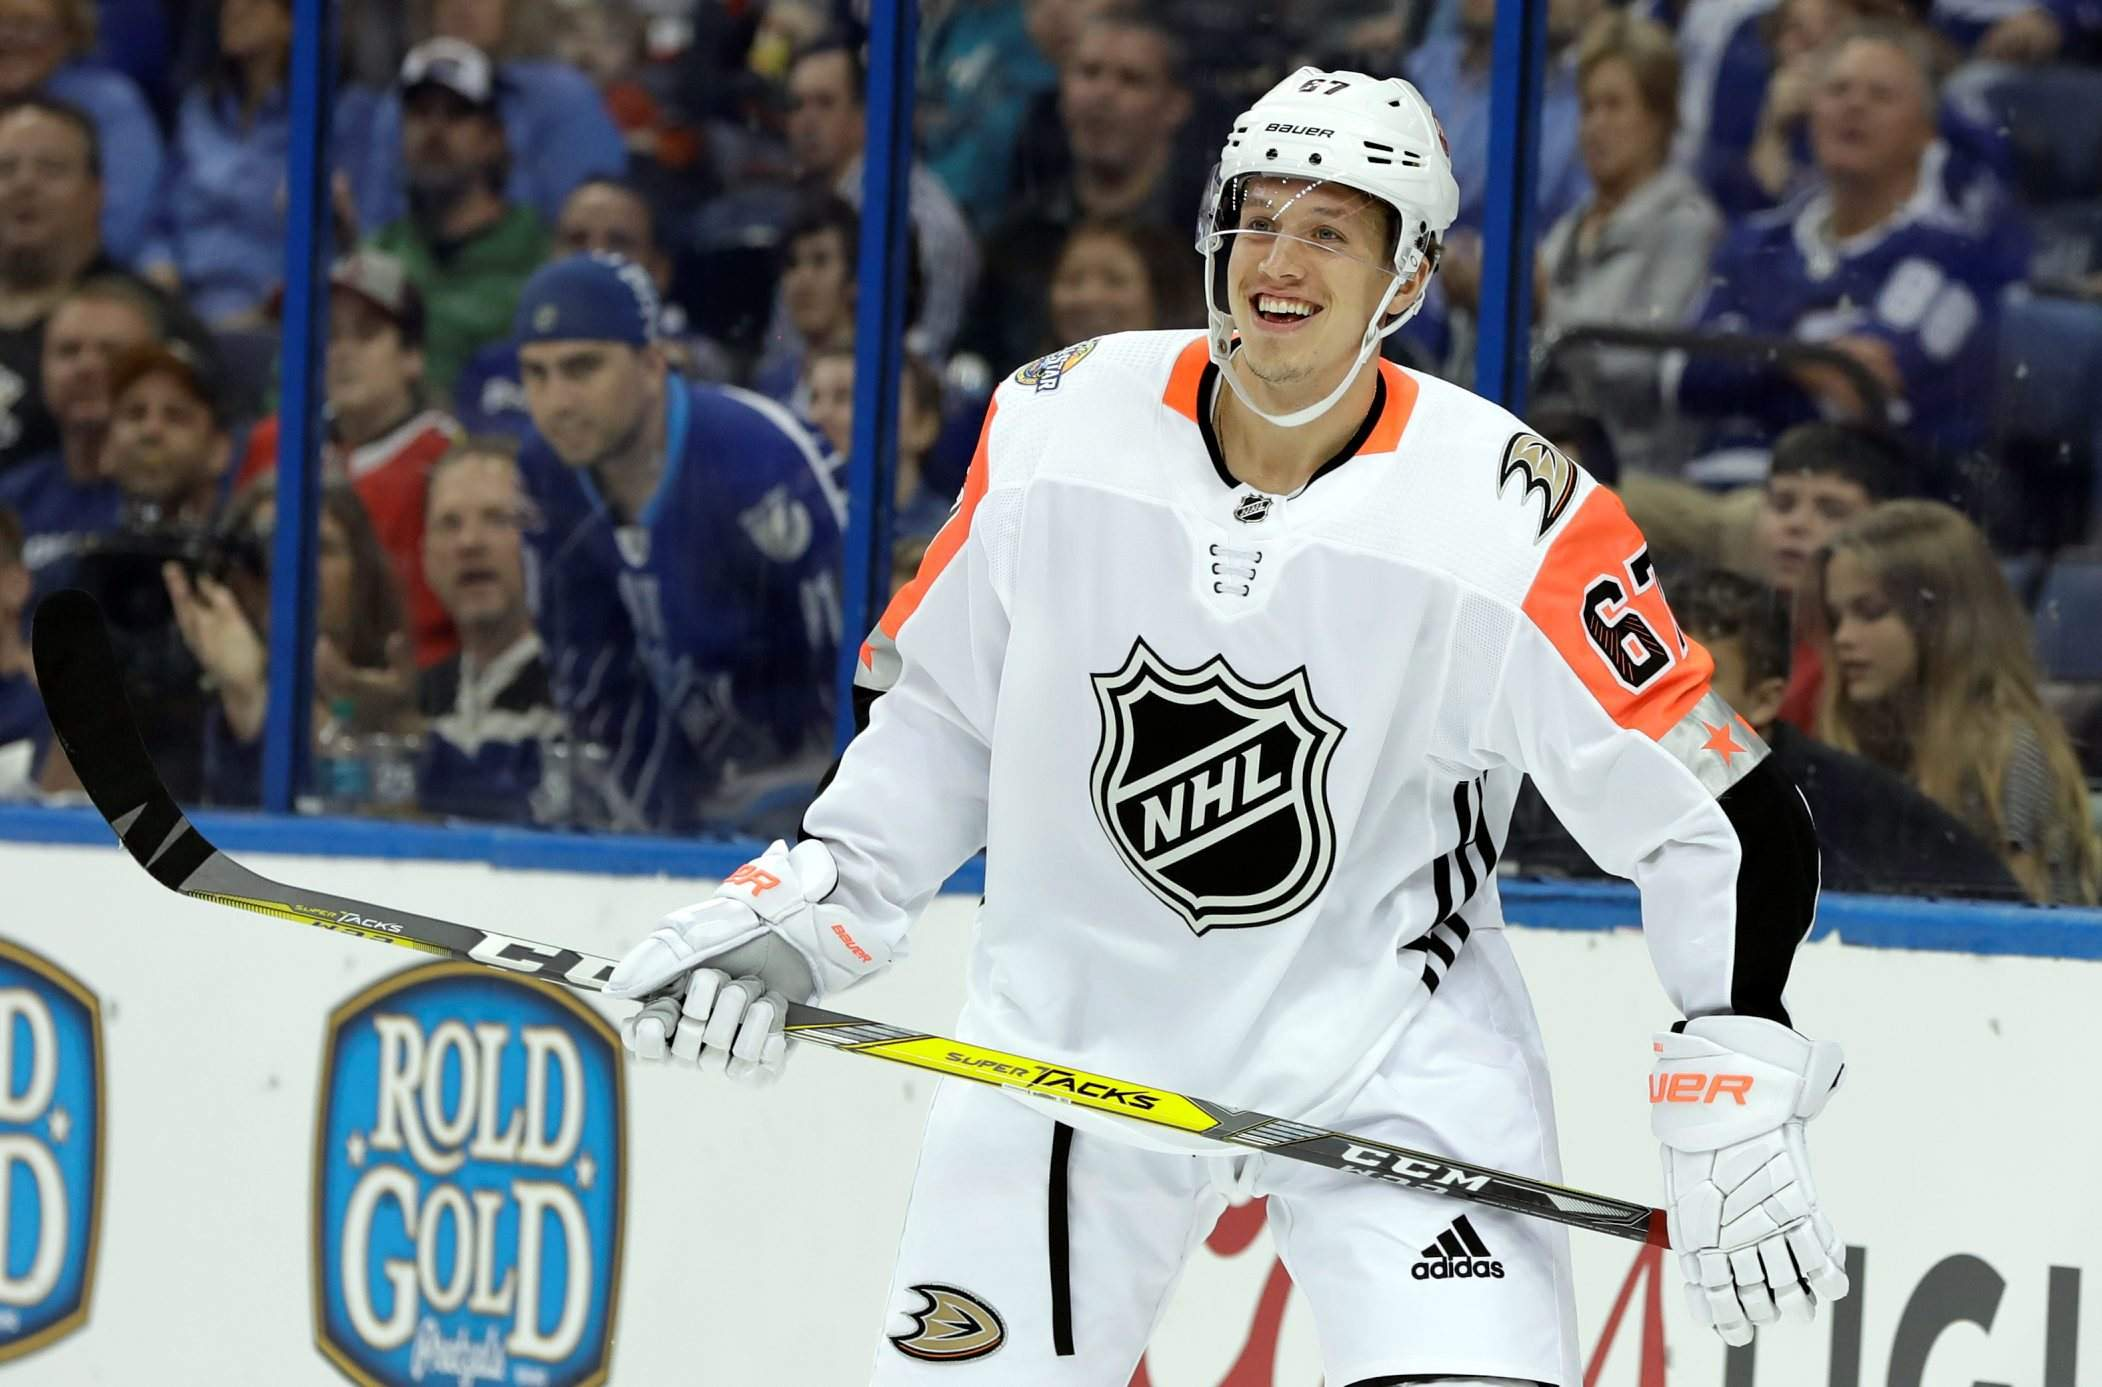 Pacific Division s Rickard Rakell of the Anaheim Ducks celebrates after  scoring during the NHL hockey All-Star game with the Atlantic Division  Sunday in ... b858f9840